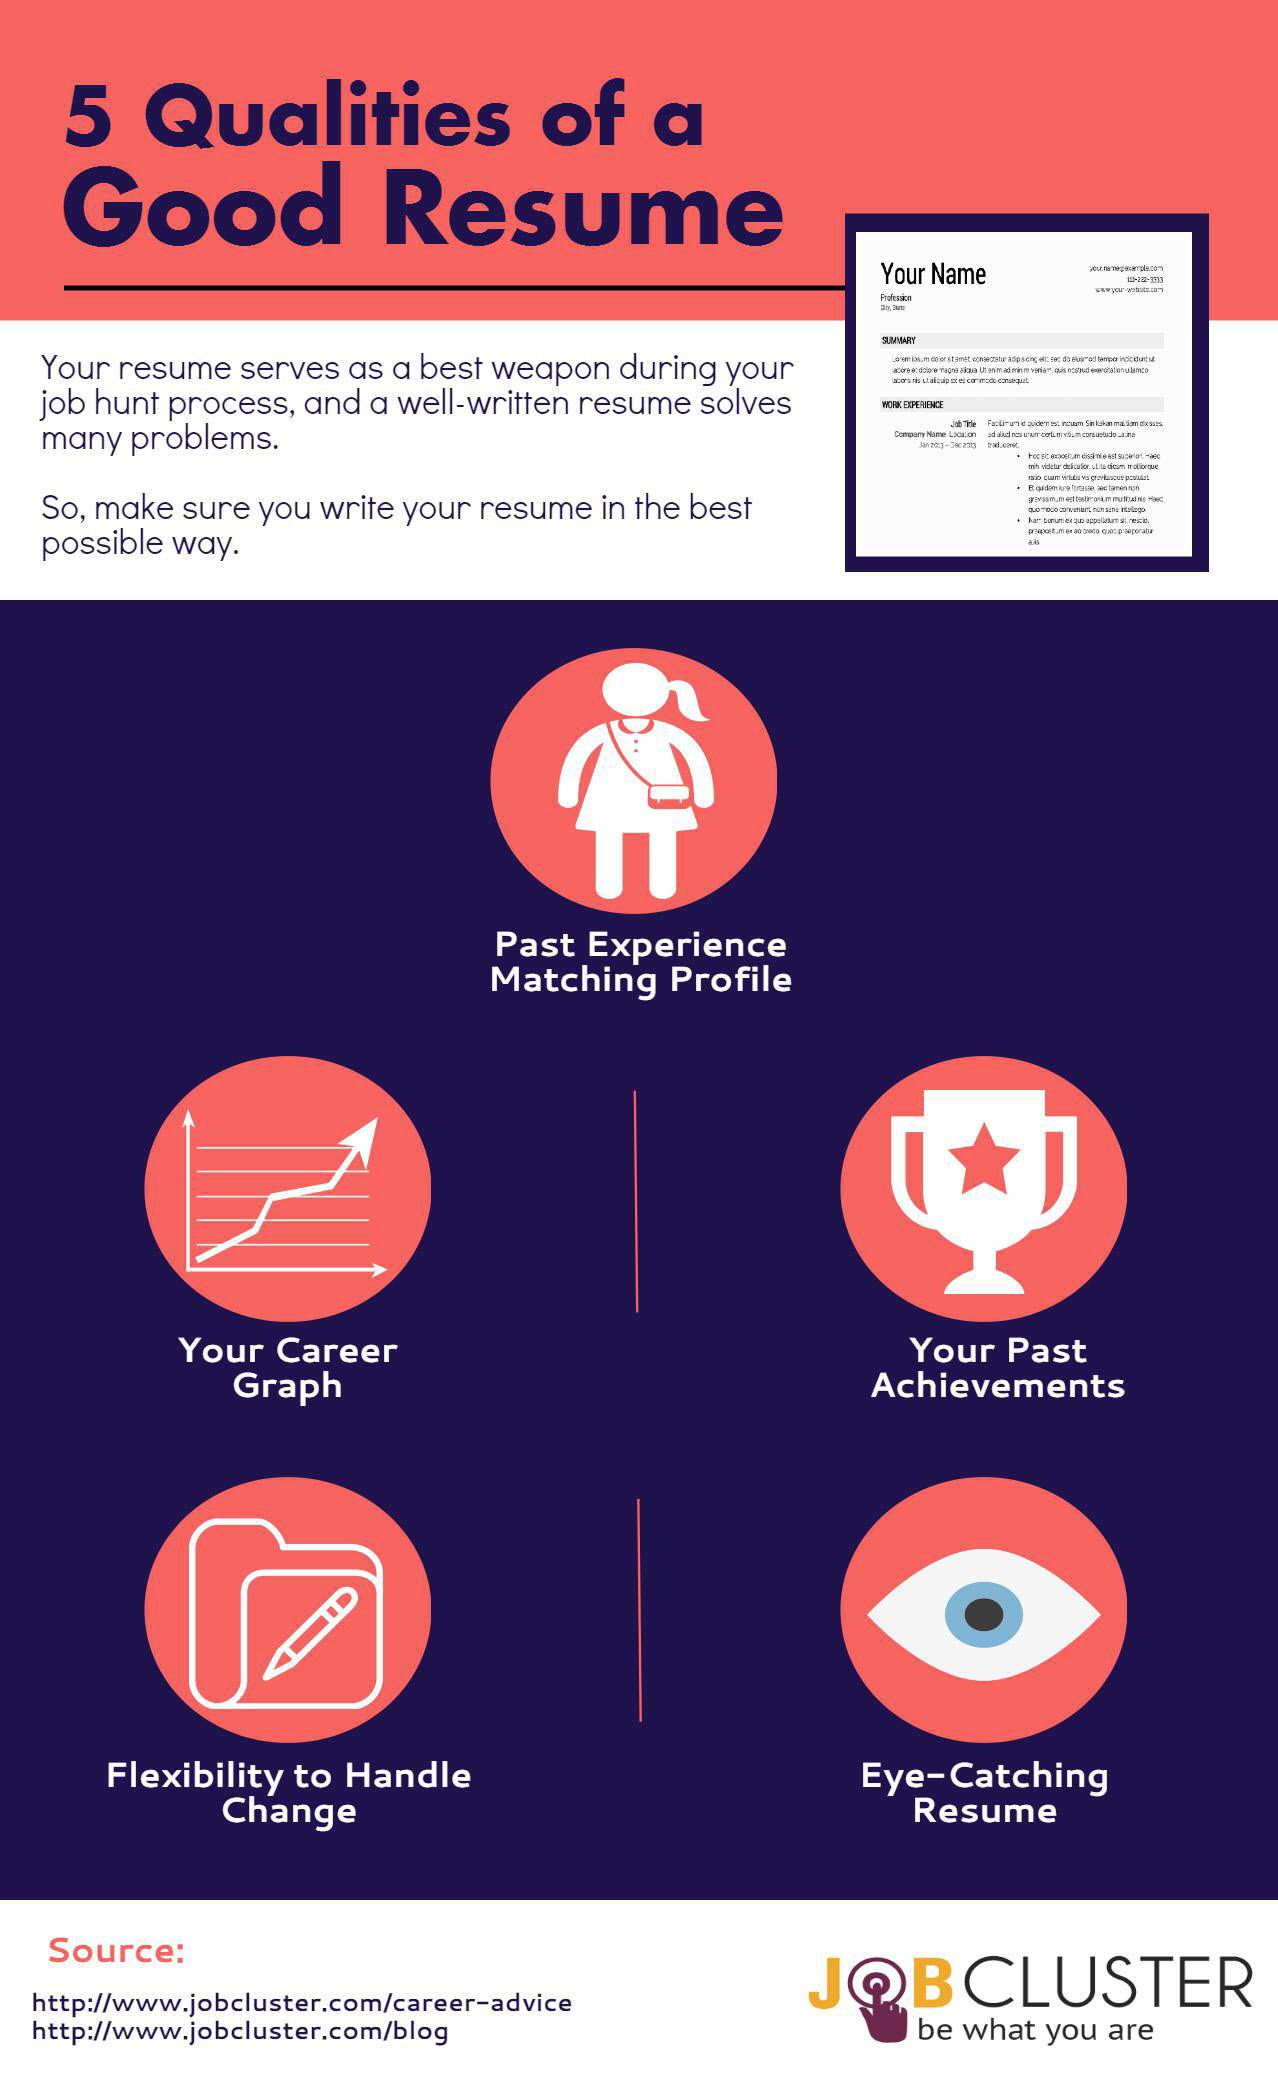 5 Resume Qualities Of A Good Resume  Infographic  Tips For A Good Resume